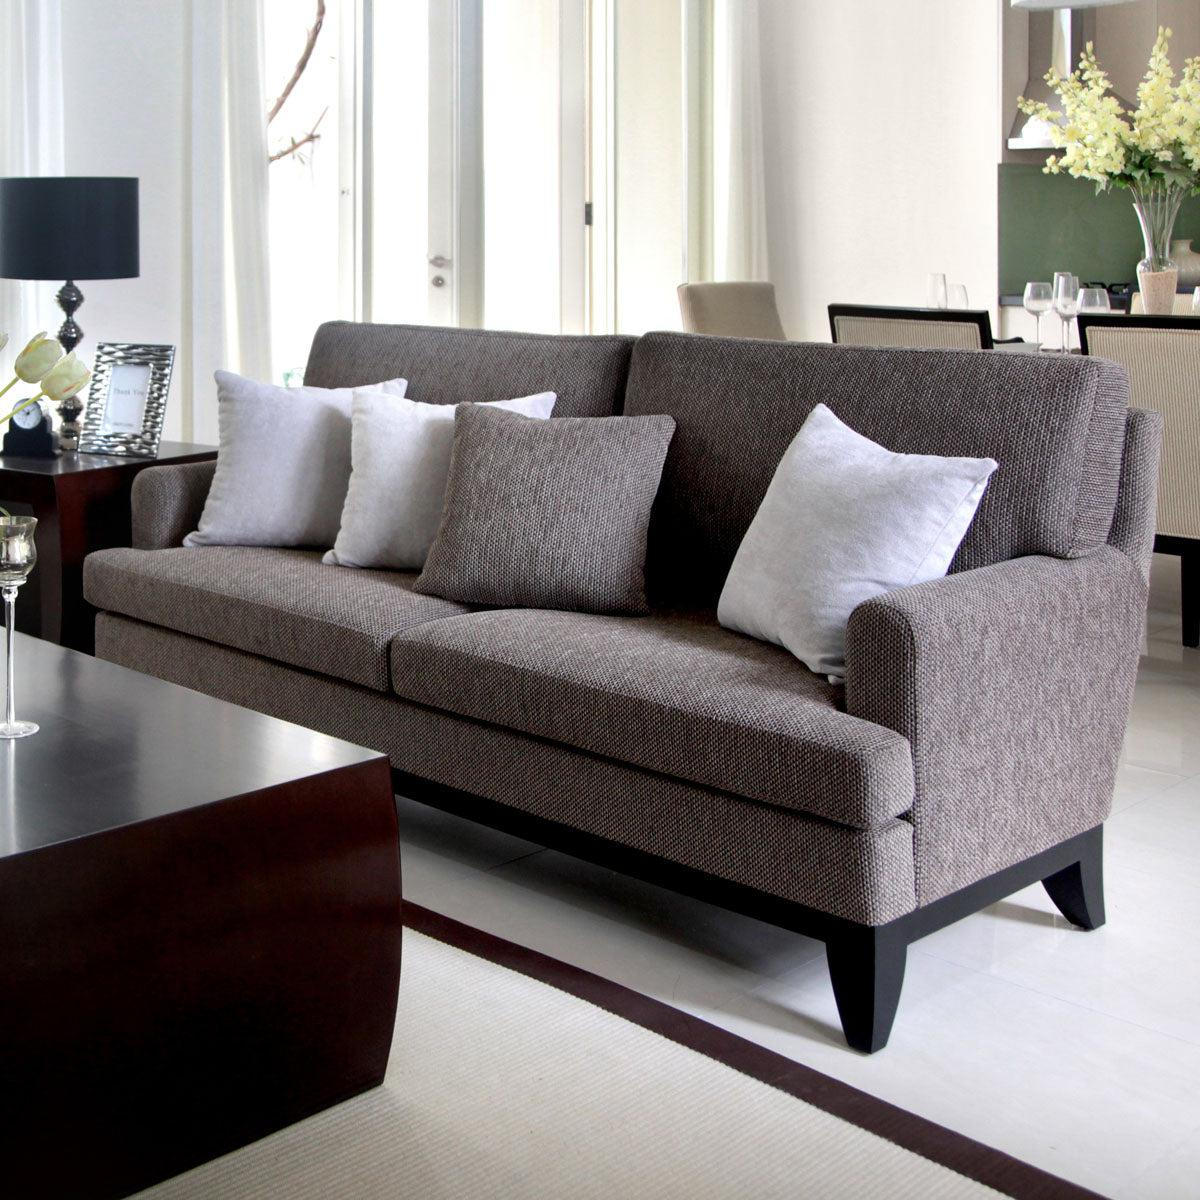 furniture palembang three seat sofa wood jakarta